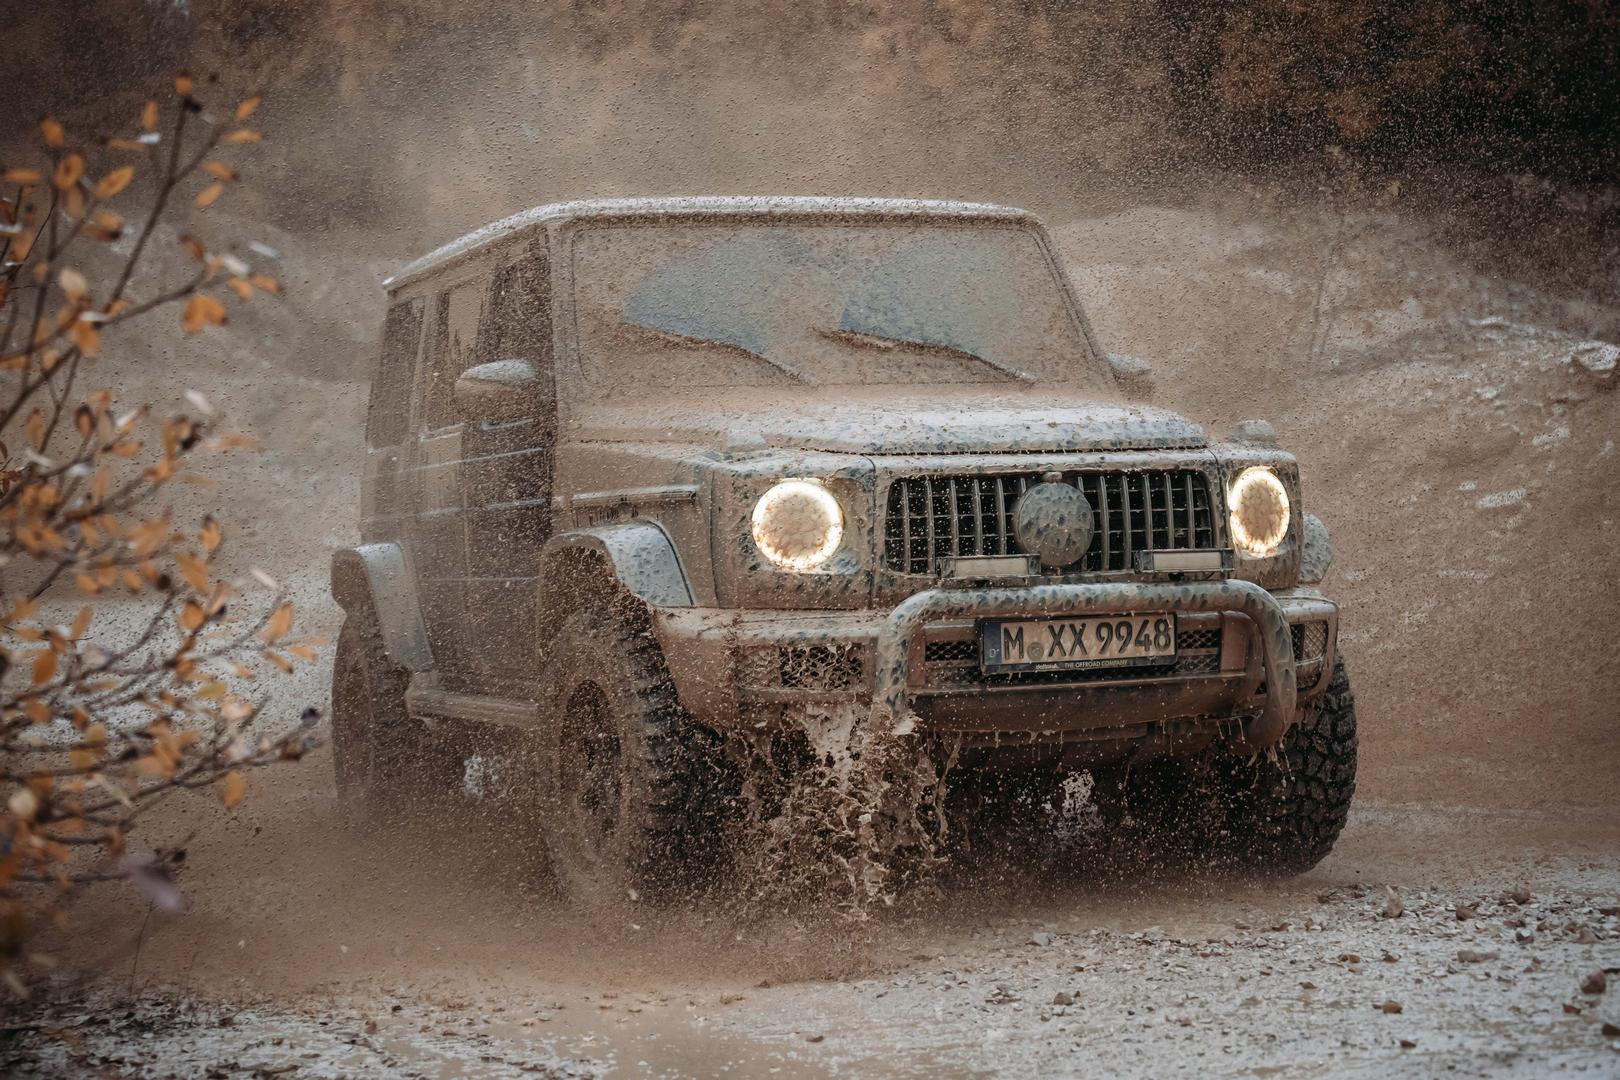 This Package Turns Your G-Wagon into the Off-Road Warrior it was Meant to Be